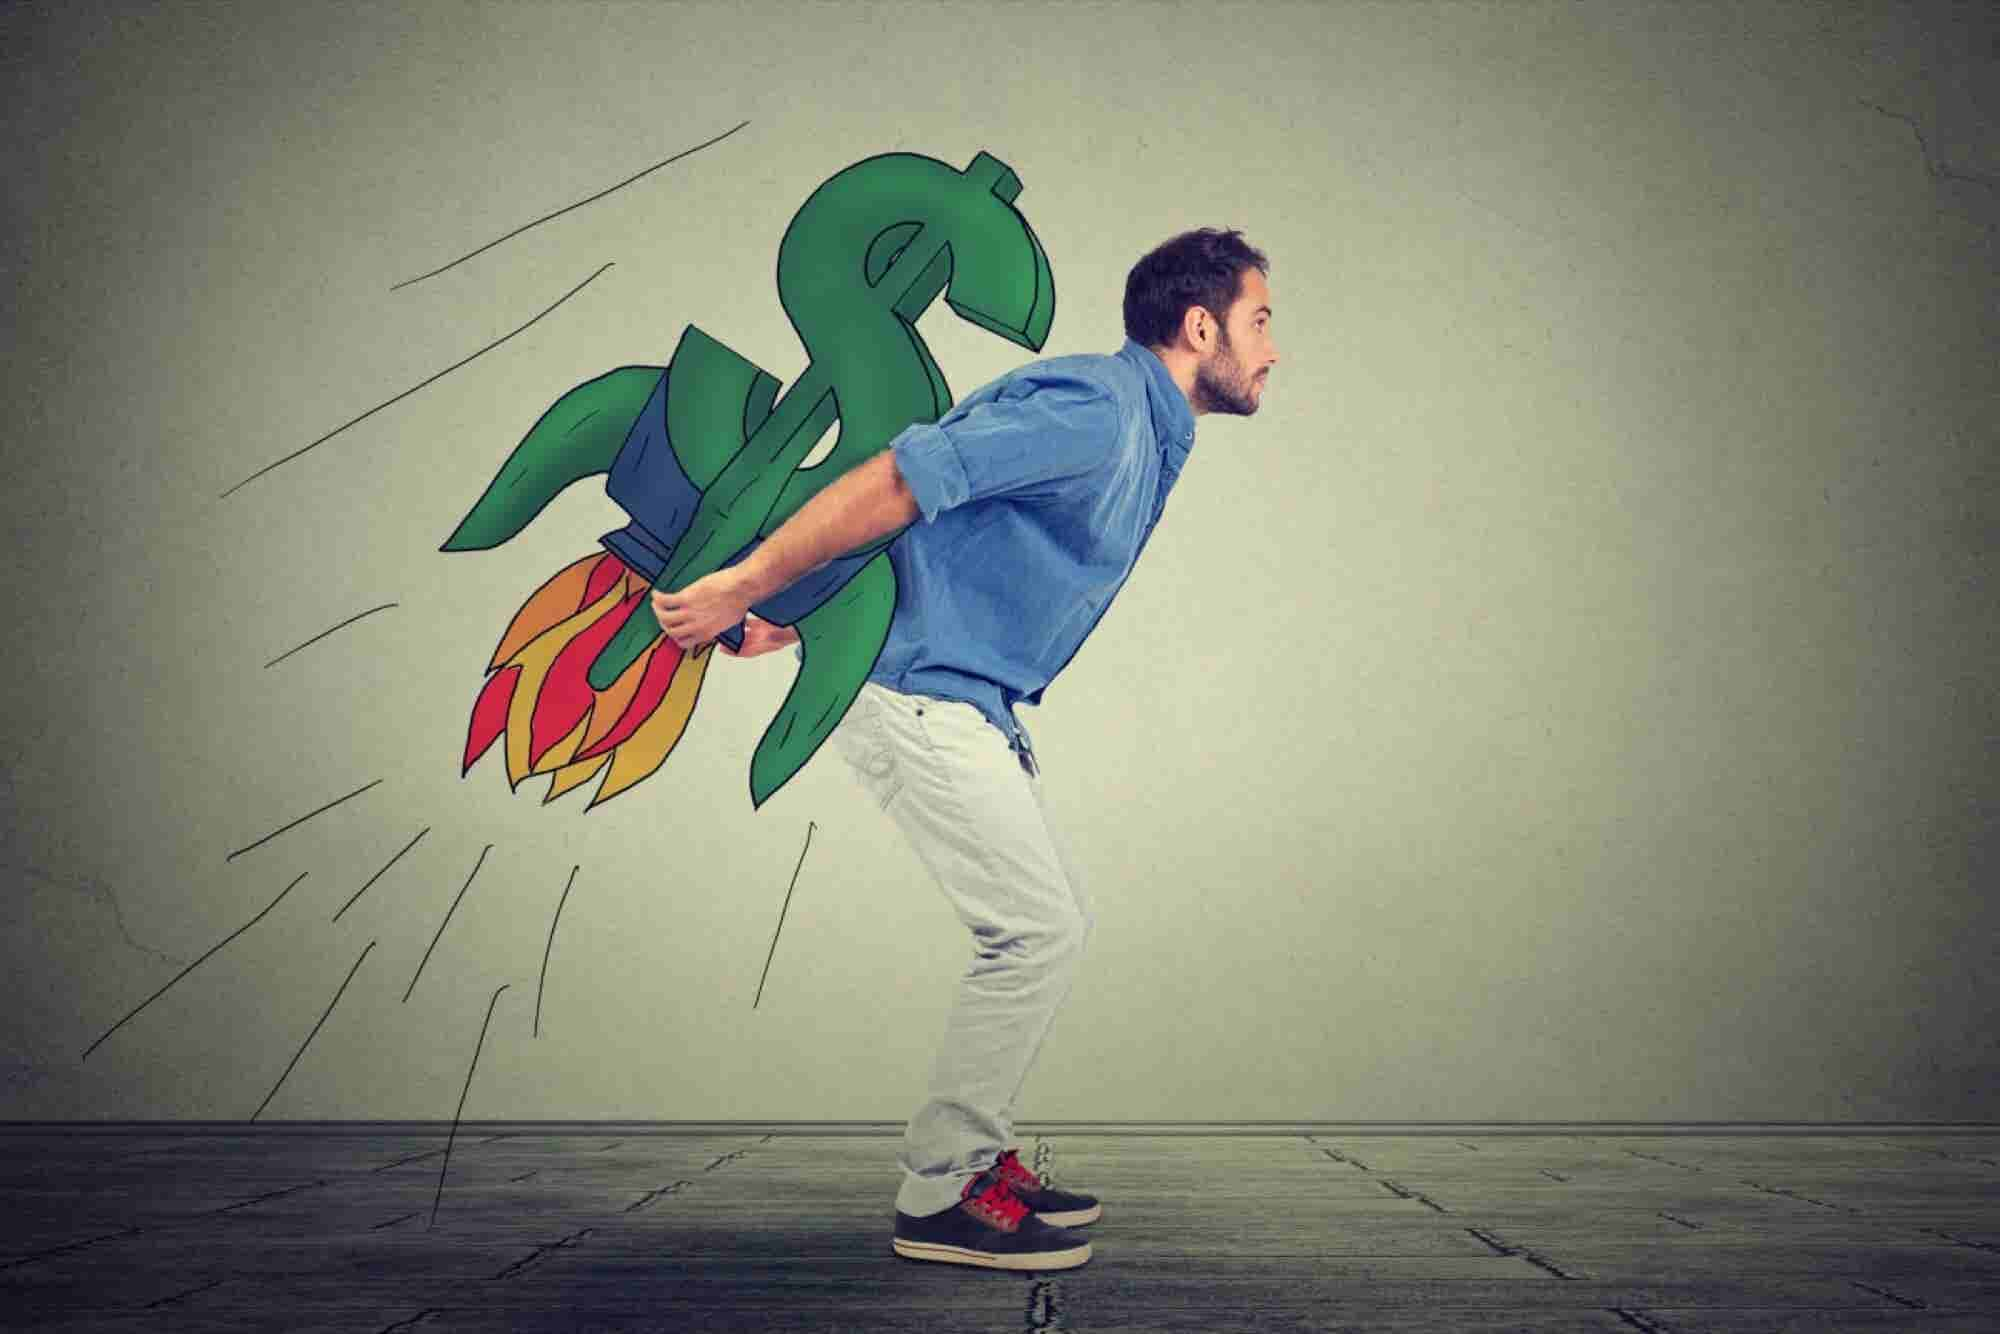 4 Things Startup Leaders Need to Know About Accelerators